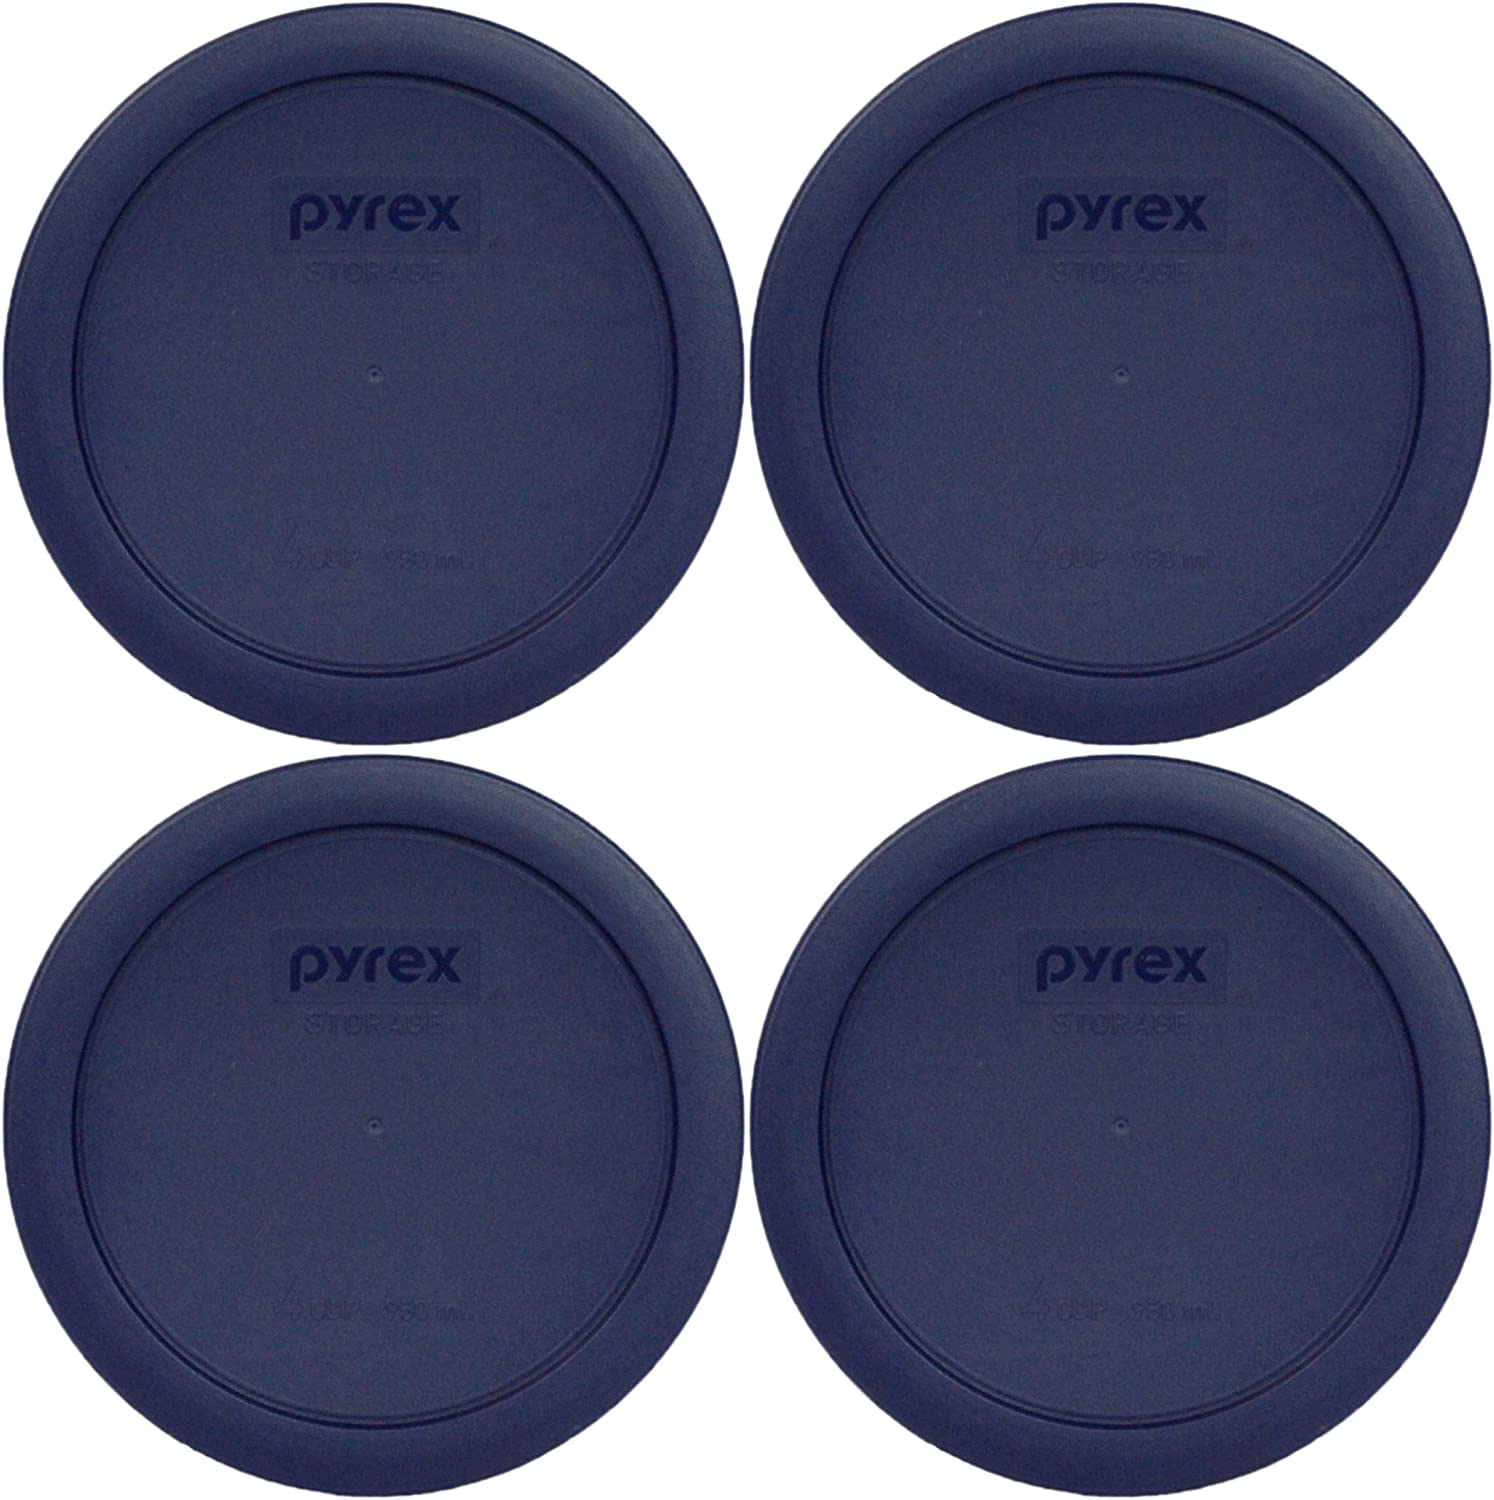 Pyrex 7201-PC Round 4 Cup Storage Lid for Glass Bowls 6, Blue